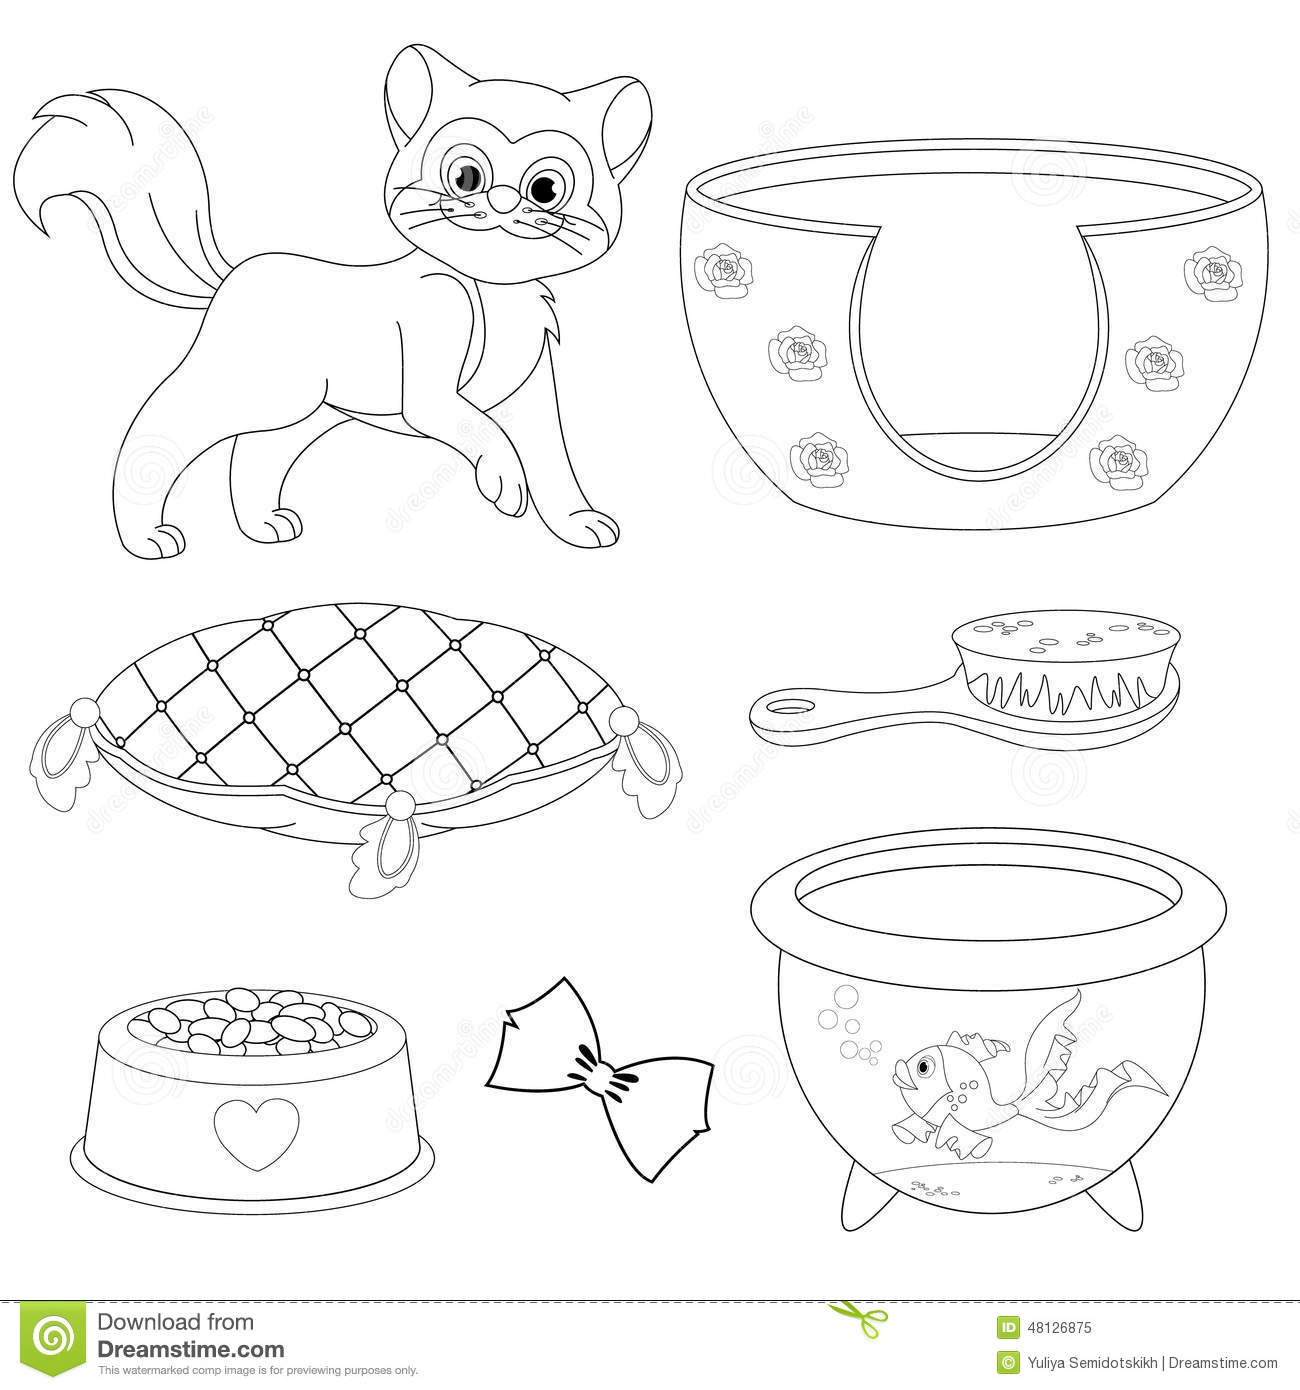 Cat With Different Toys And Accessories Coloring Book Page